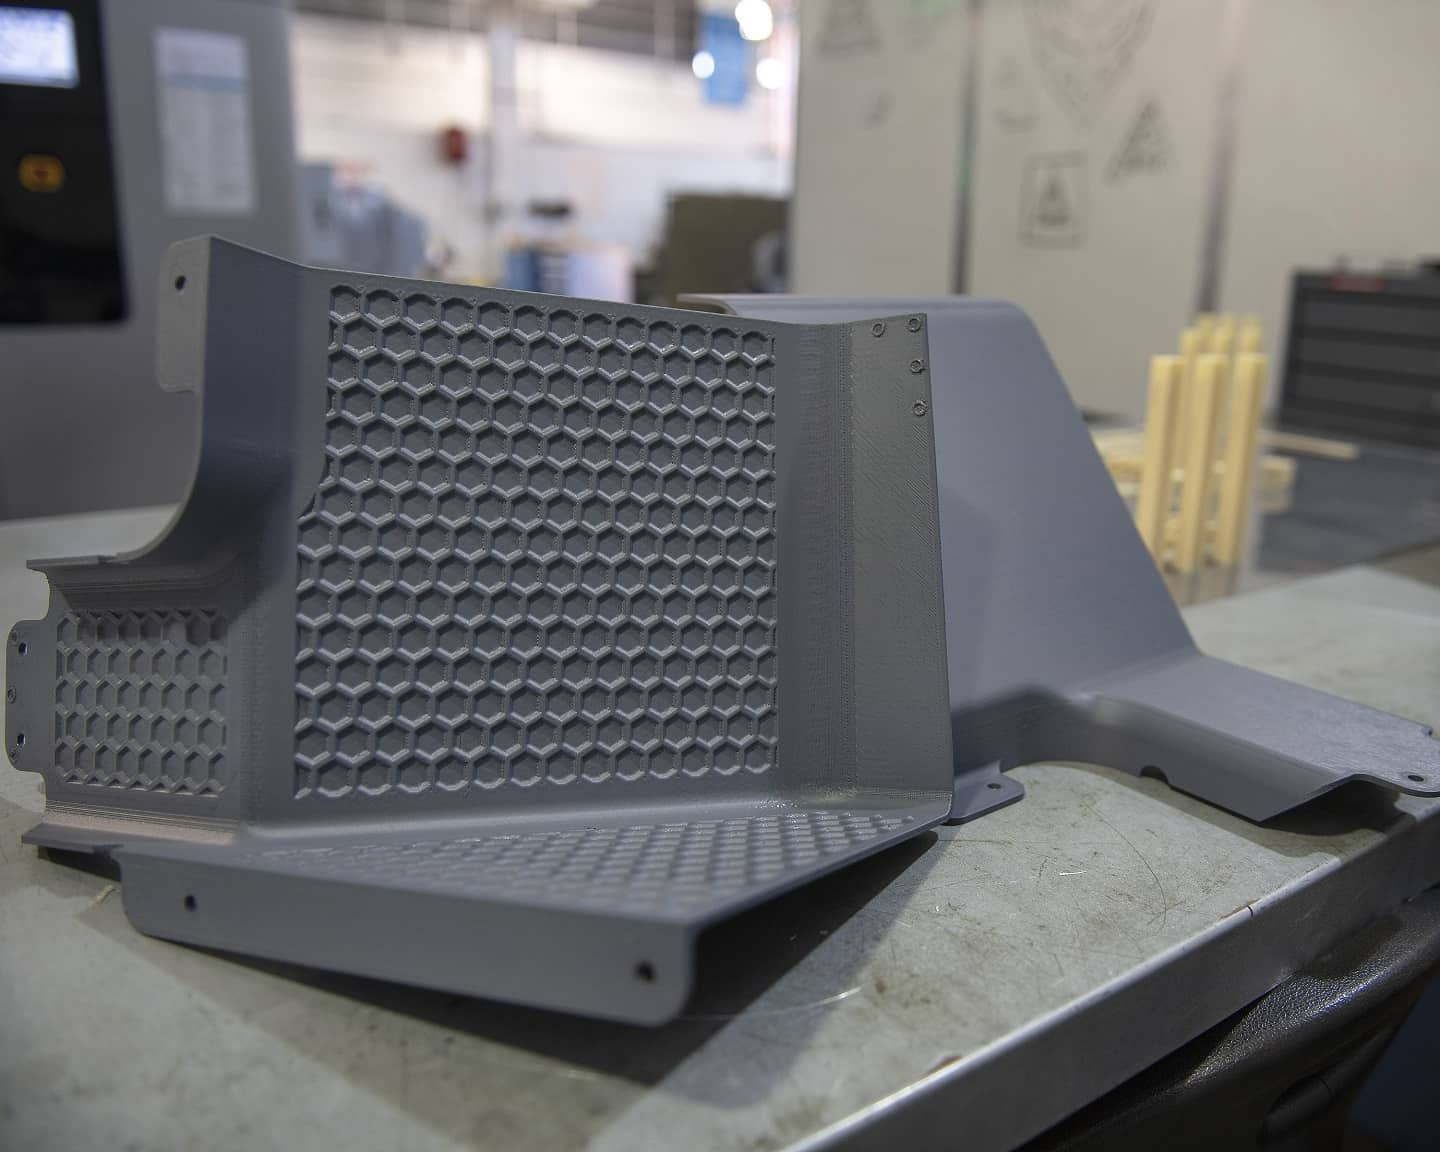 The first 3D printed aircraft parts from Stratasys F900 - latrine covers.